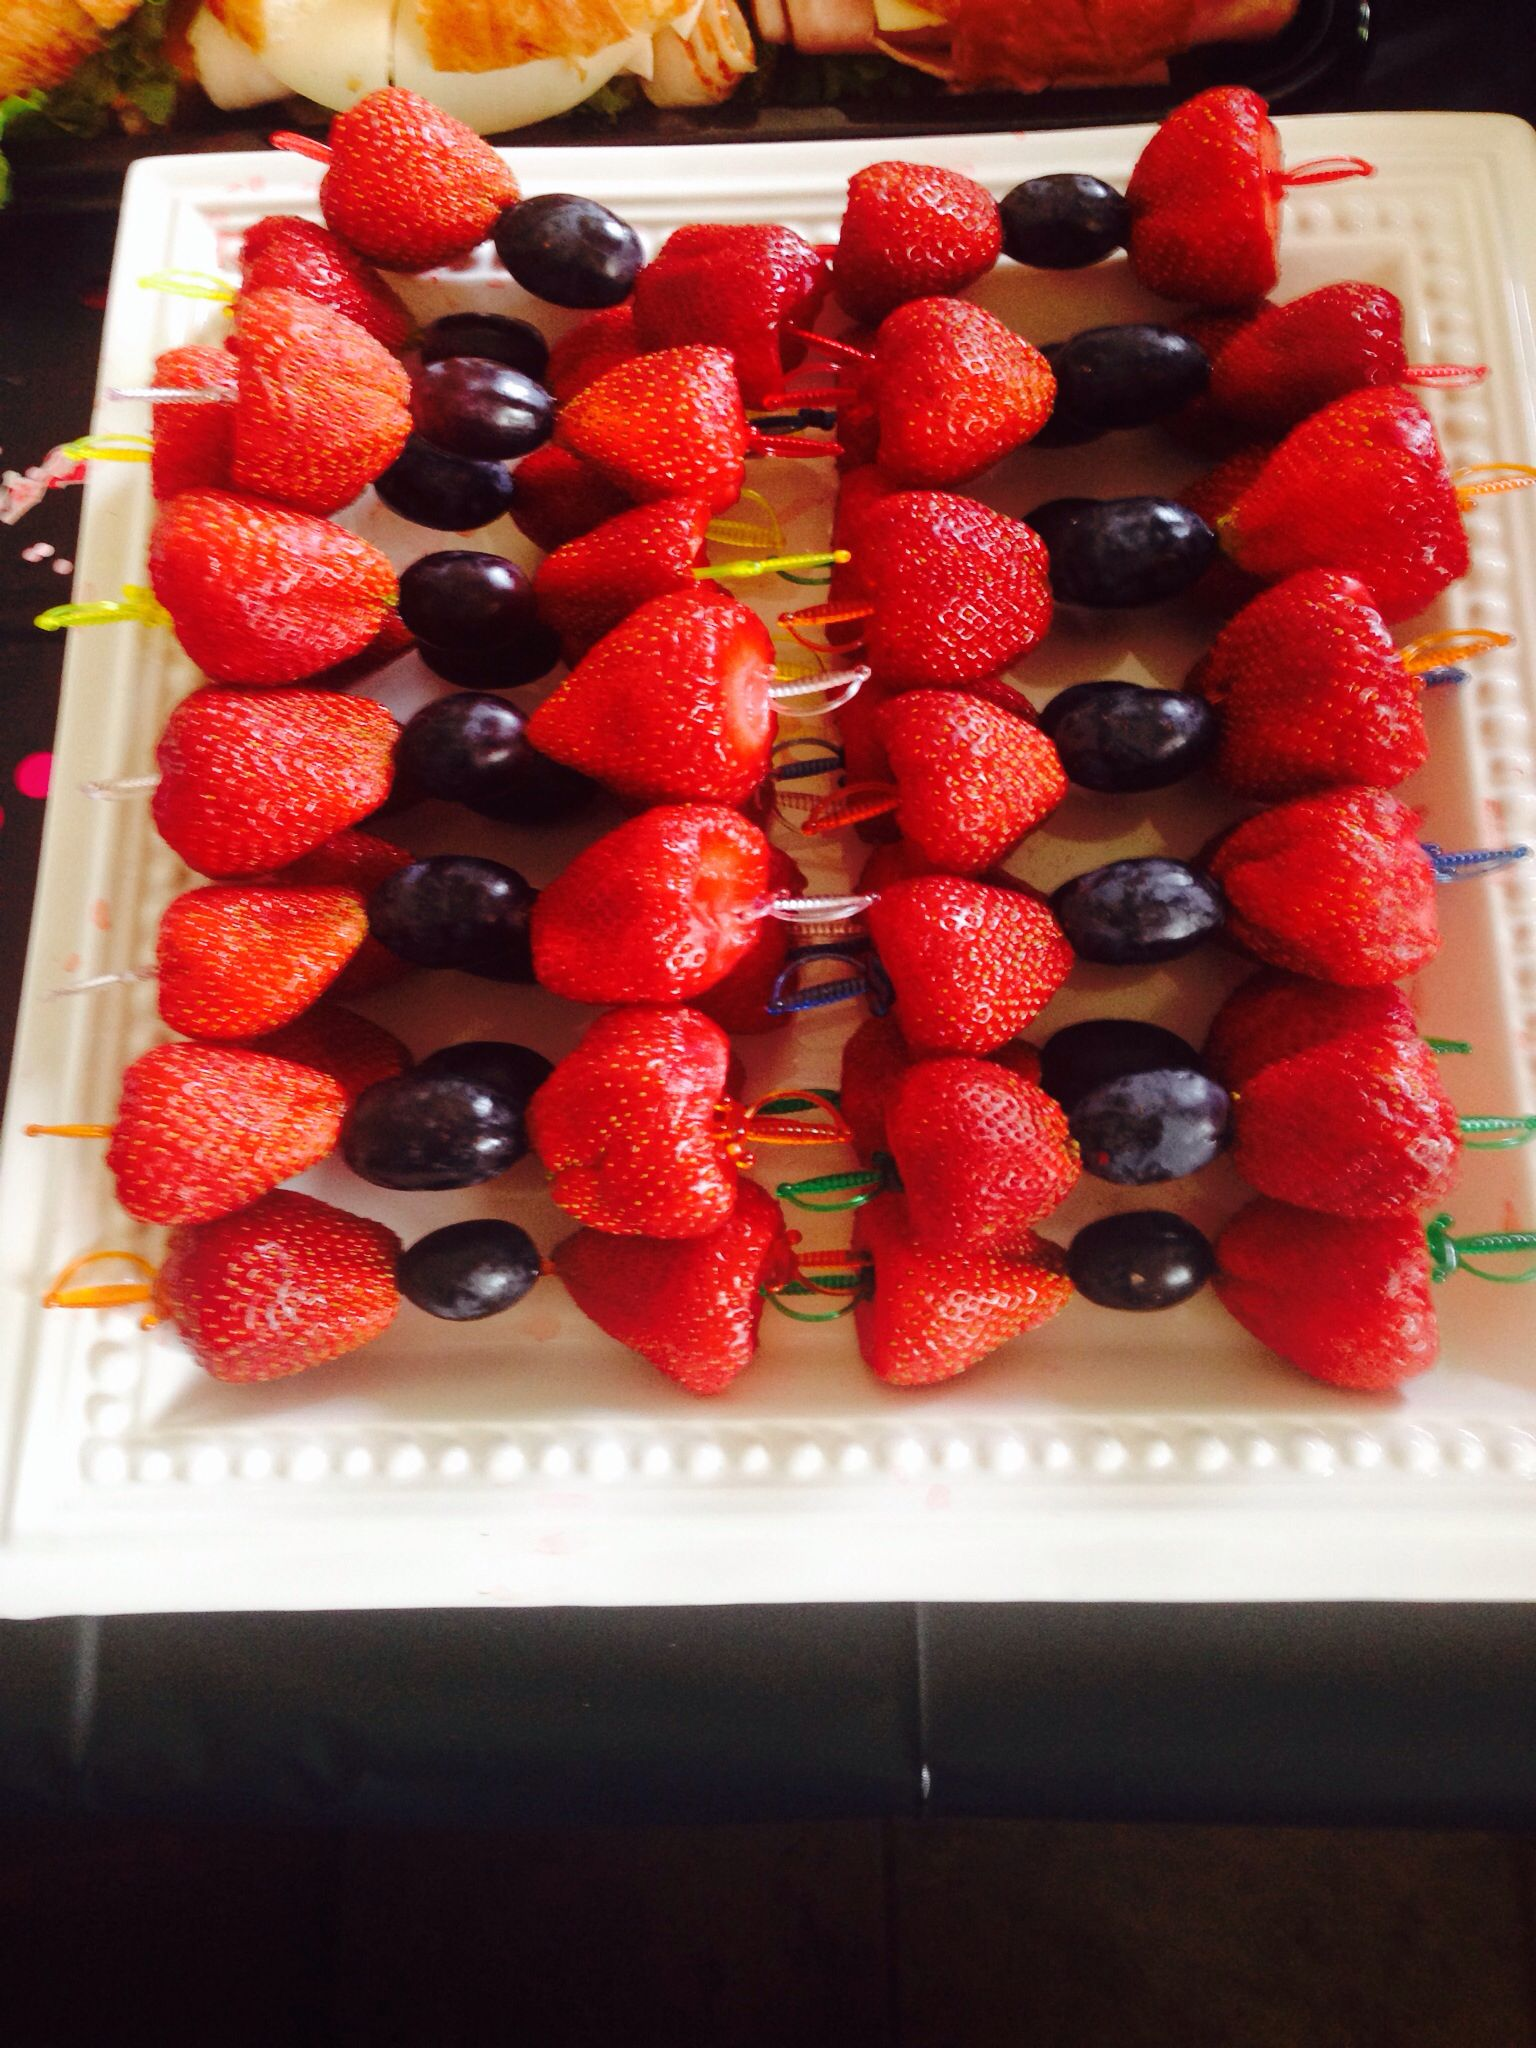 Strawberries and grapes for bow ties